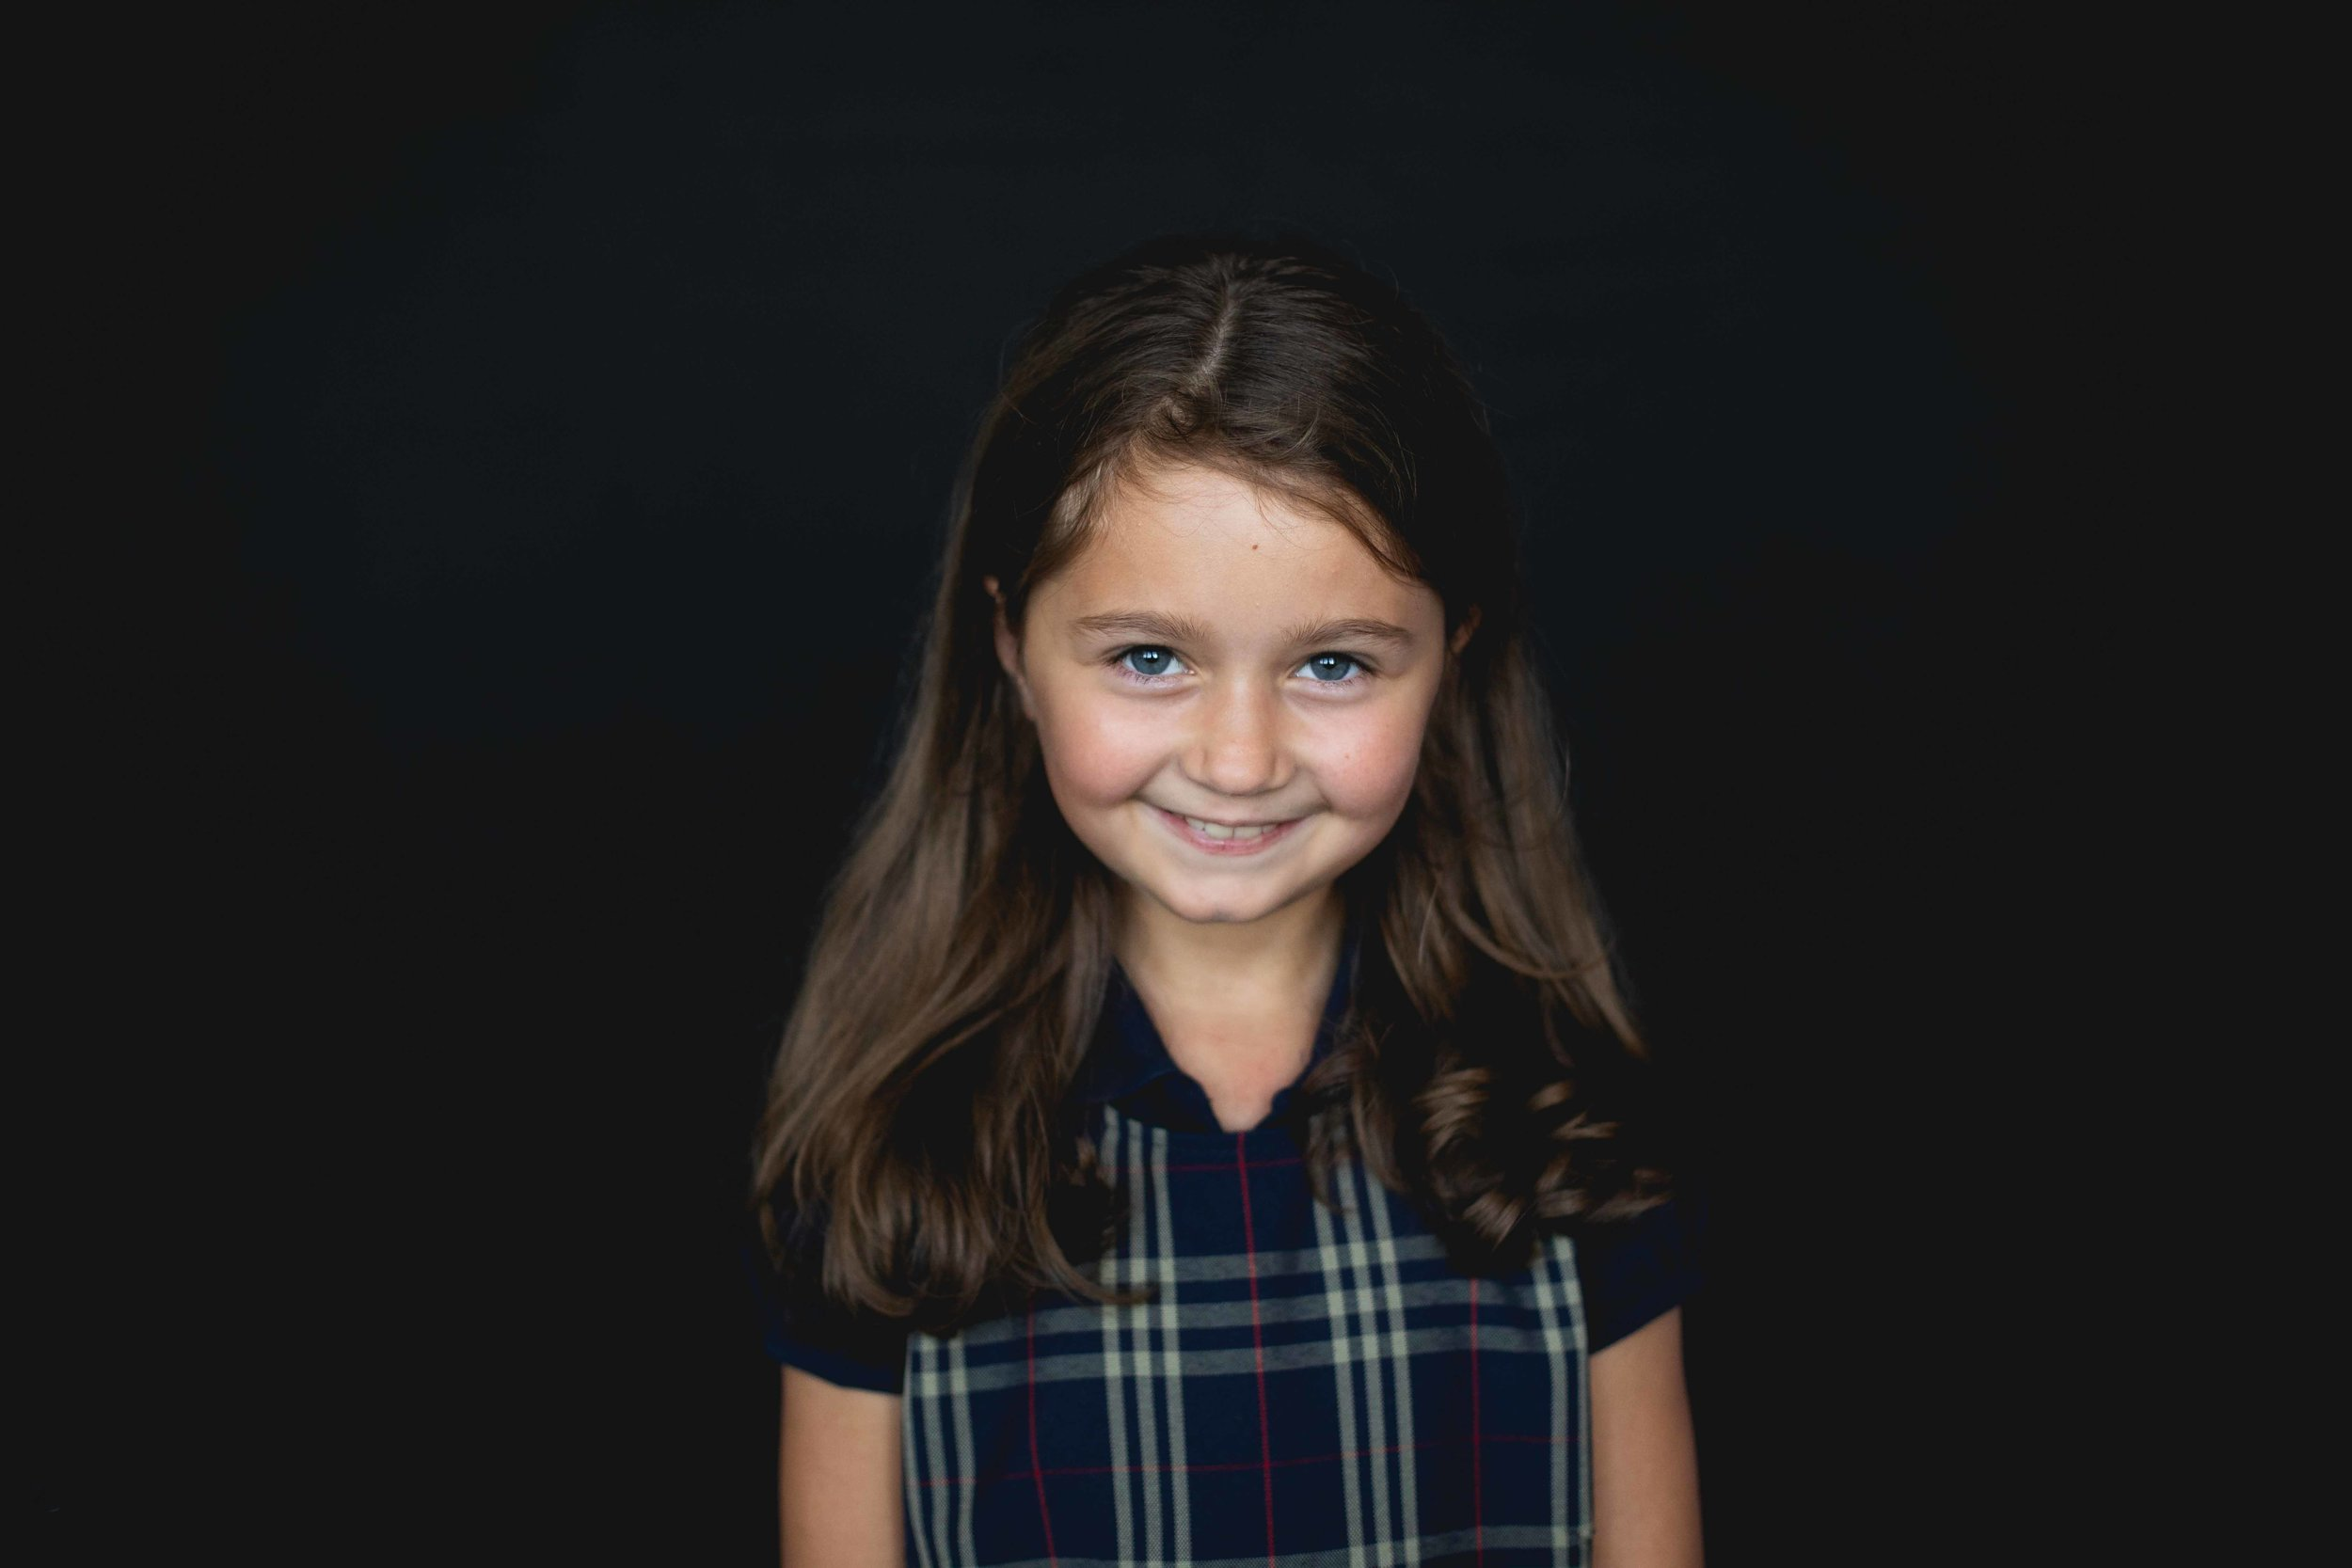 20180914_89932-ND GRADE- ---12snowflake-pittsburgh-boutique-school-photography.jpg